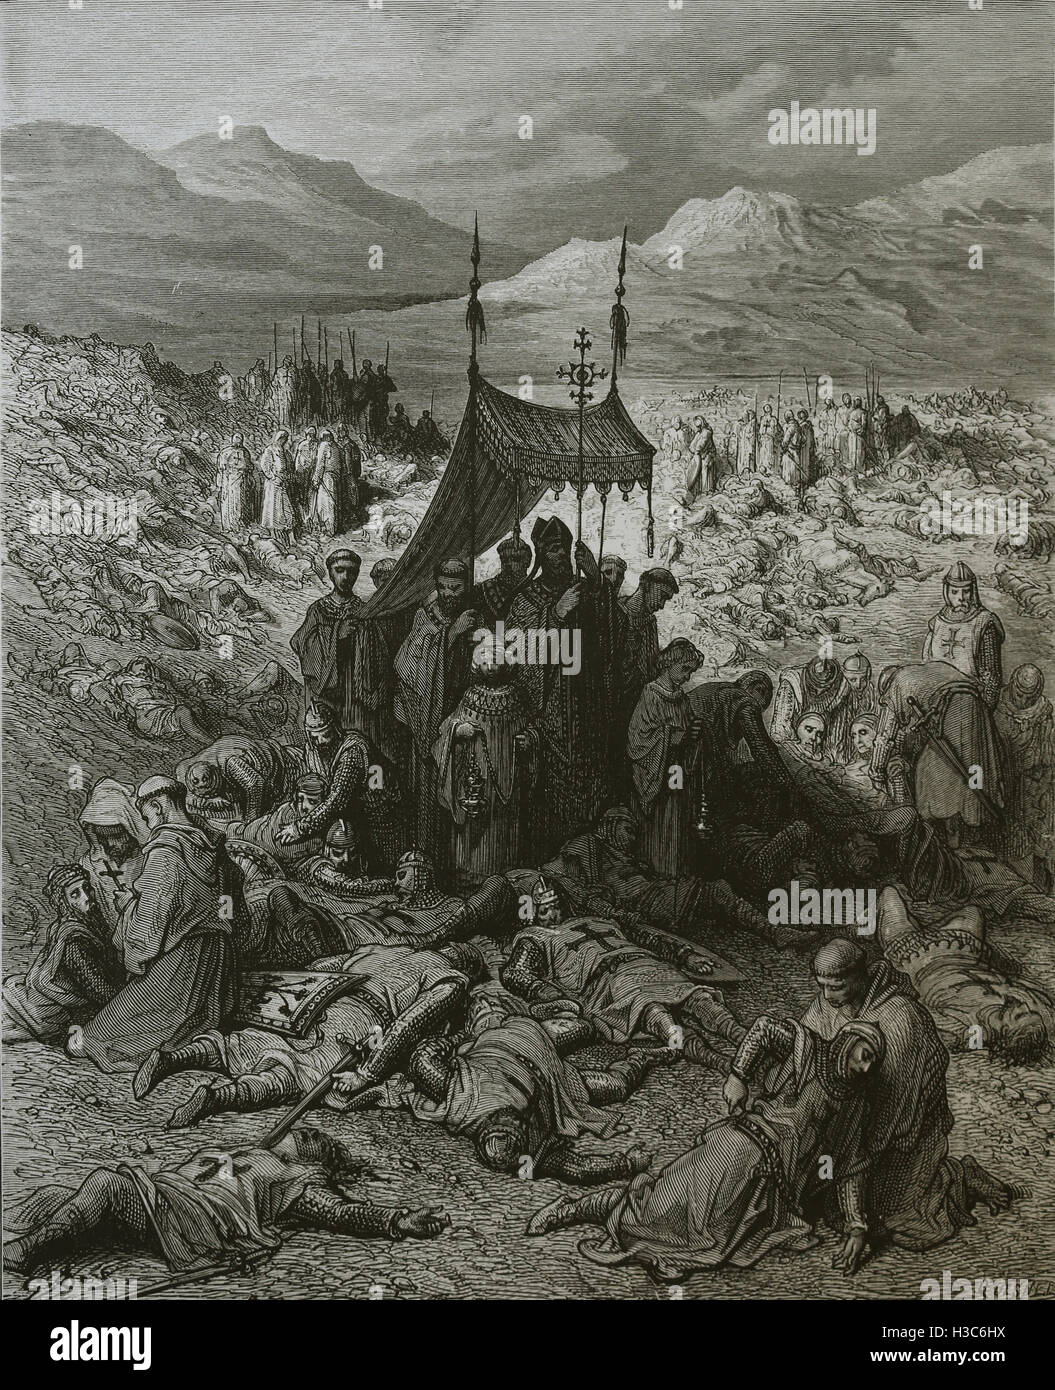 First Crusade. Burying the Dead After the Battle of Dorylaeum, Anatolia. Engraving by Gustave Dore,19th century. - Stock Image